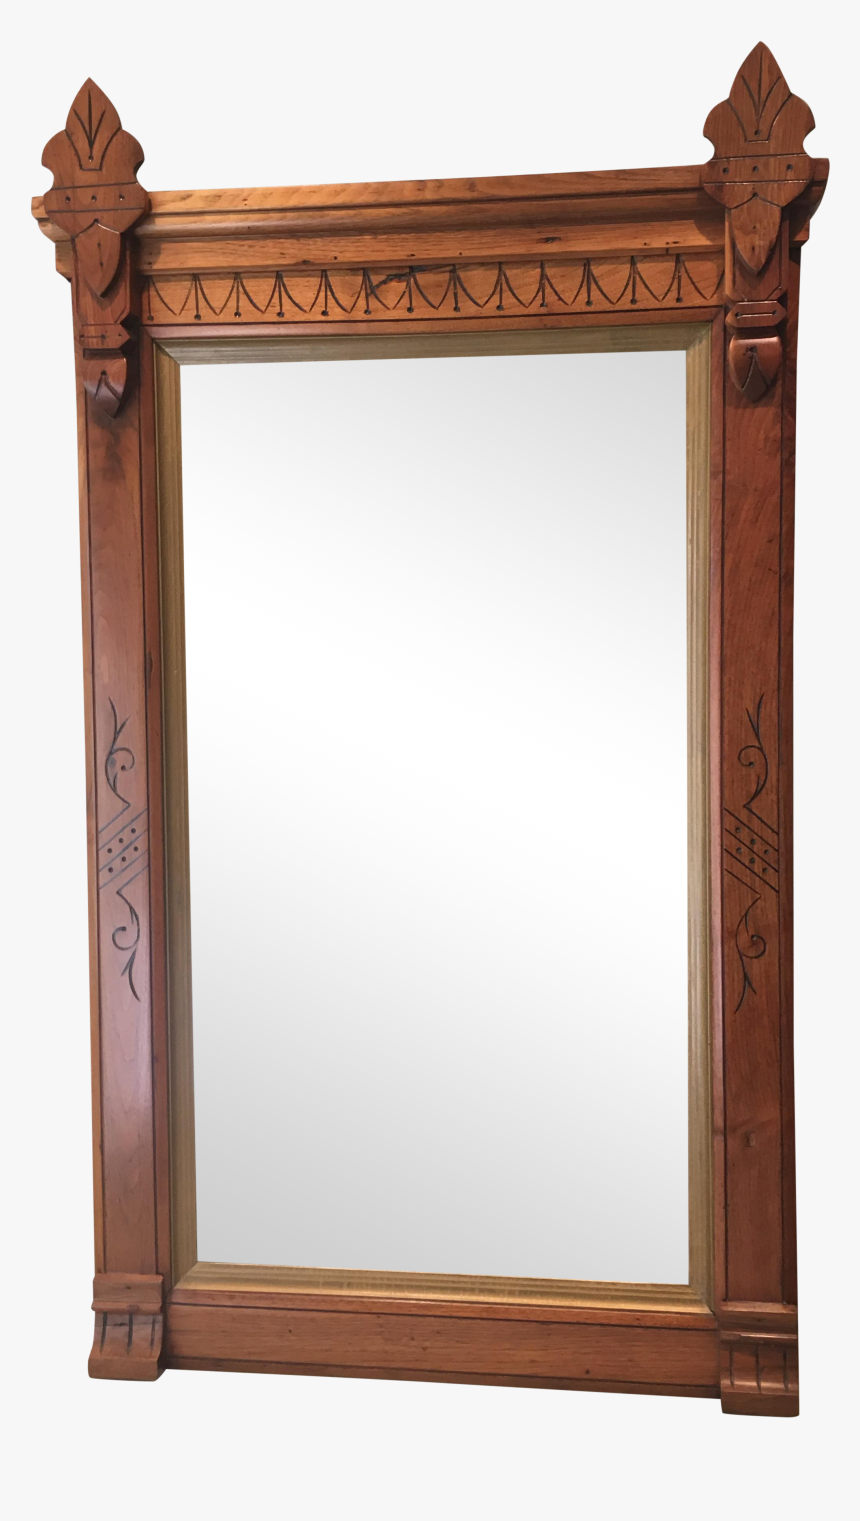 Full Size Of Old Meaning Etagere Mirrors Design Home - Plywood, HD Png Download, Free Download